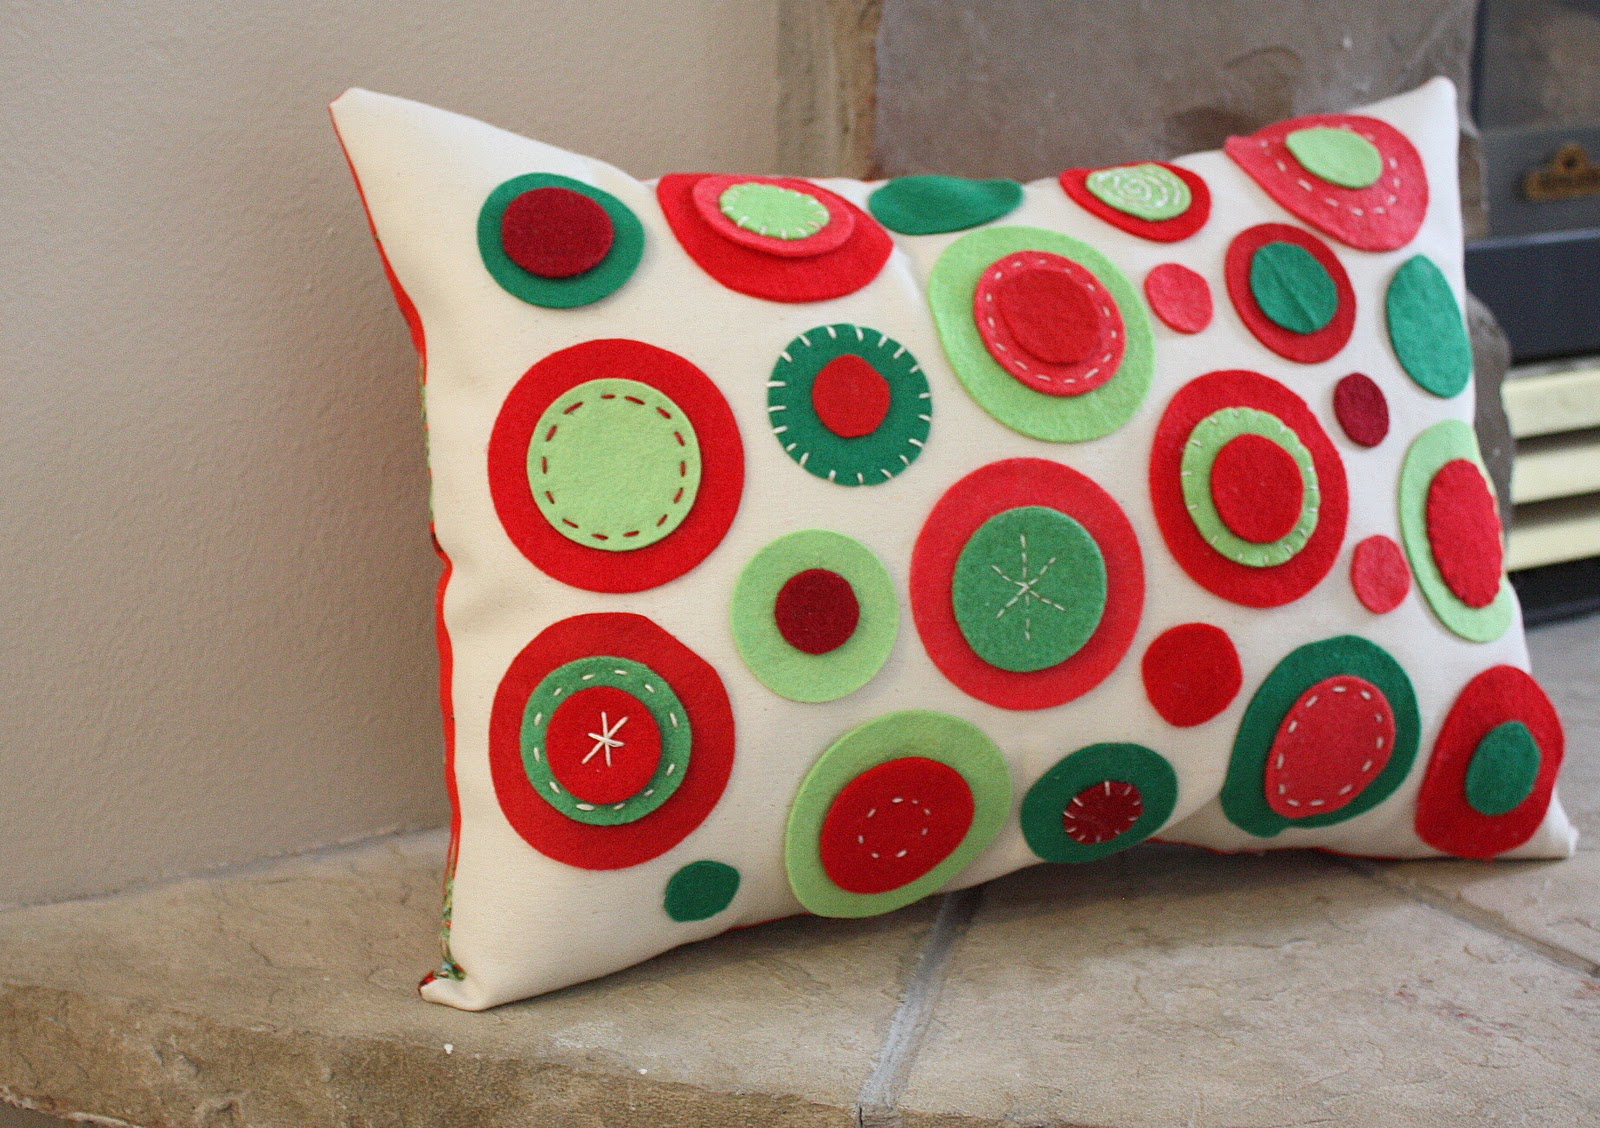 Cute Pillow Crafts : Someday Crafts: Guest Blogger - Diary of a Quilter - Felt Circles Pillow